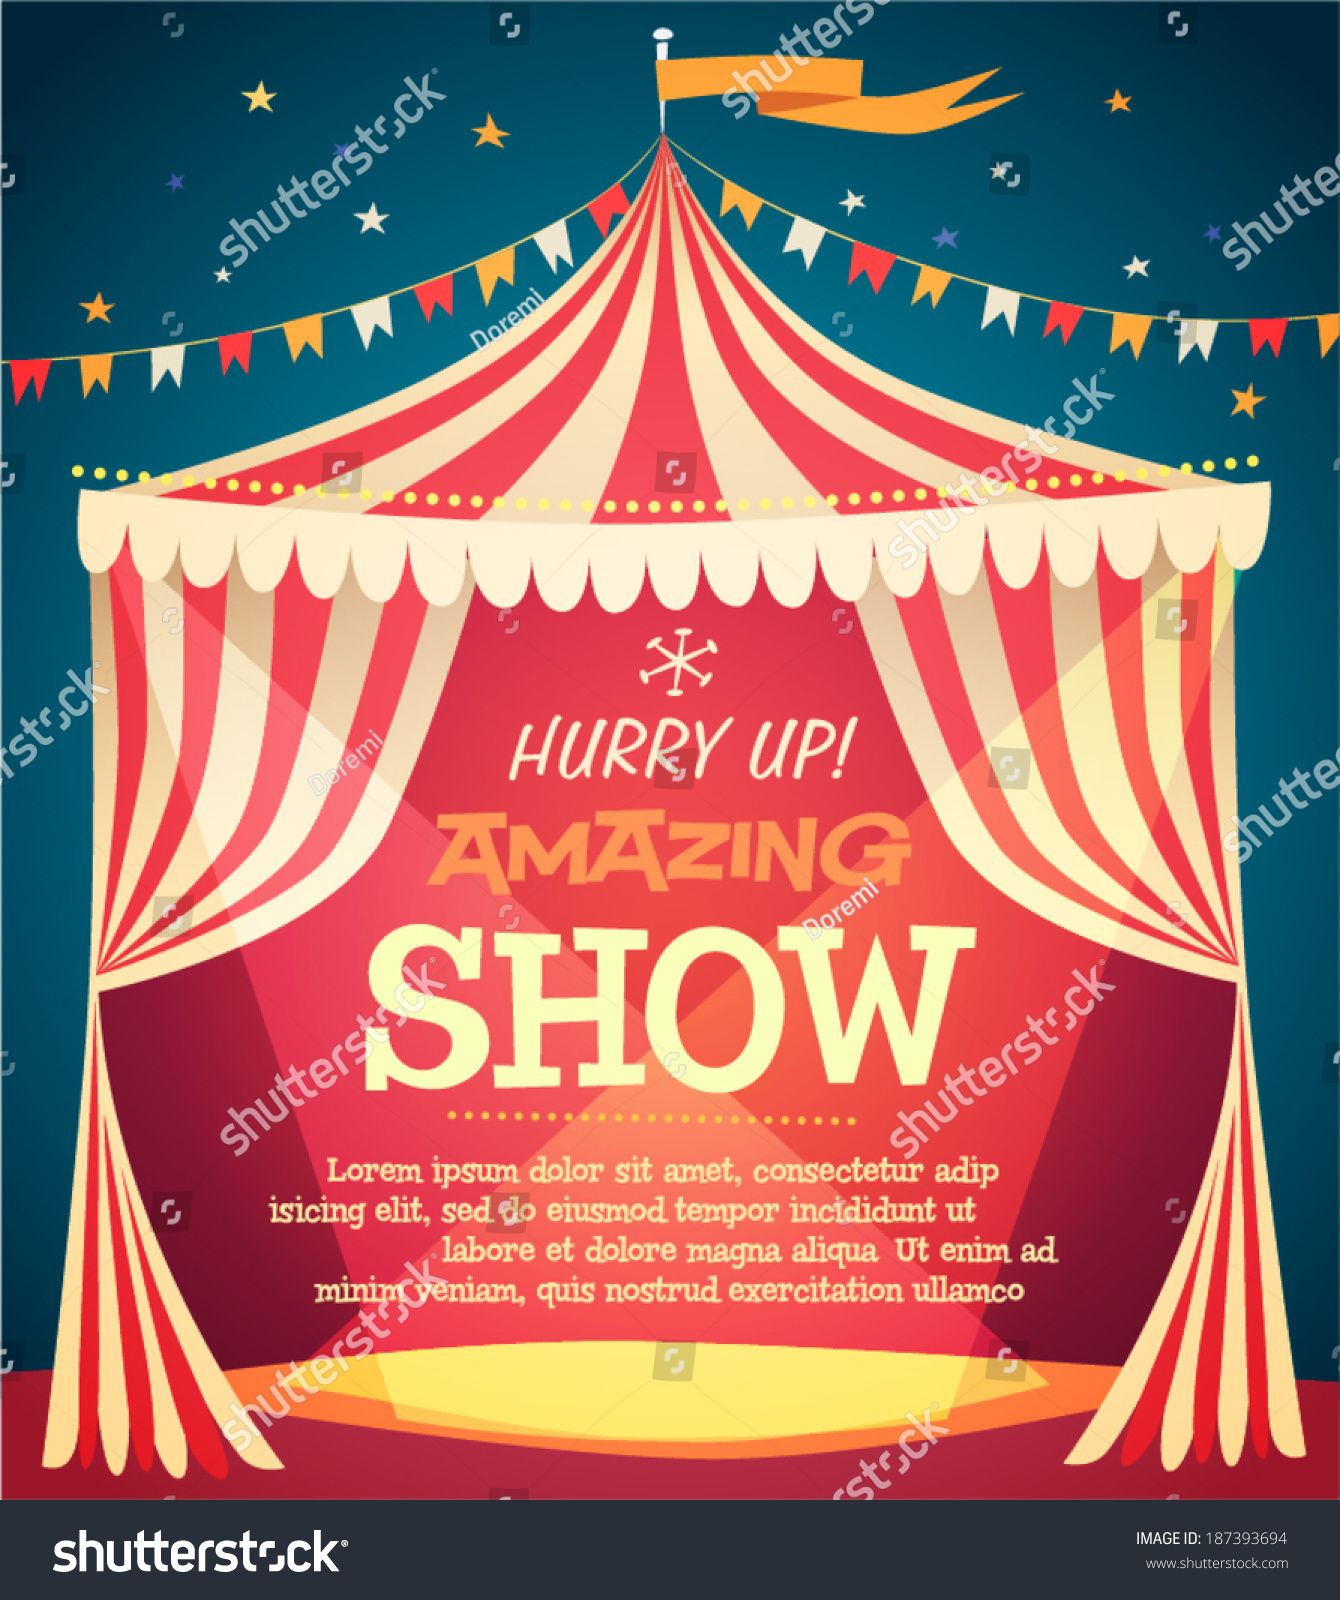 Circus Tent Poster Vector Illustration Stock Vector 187393694 ...